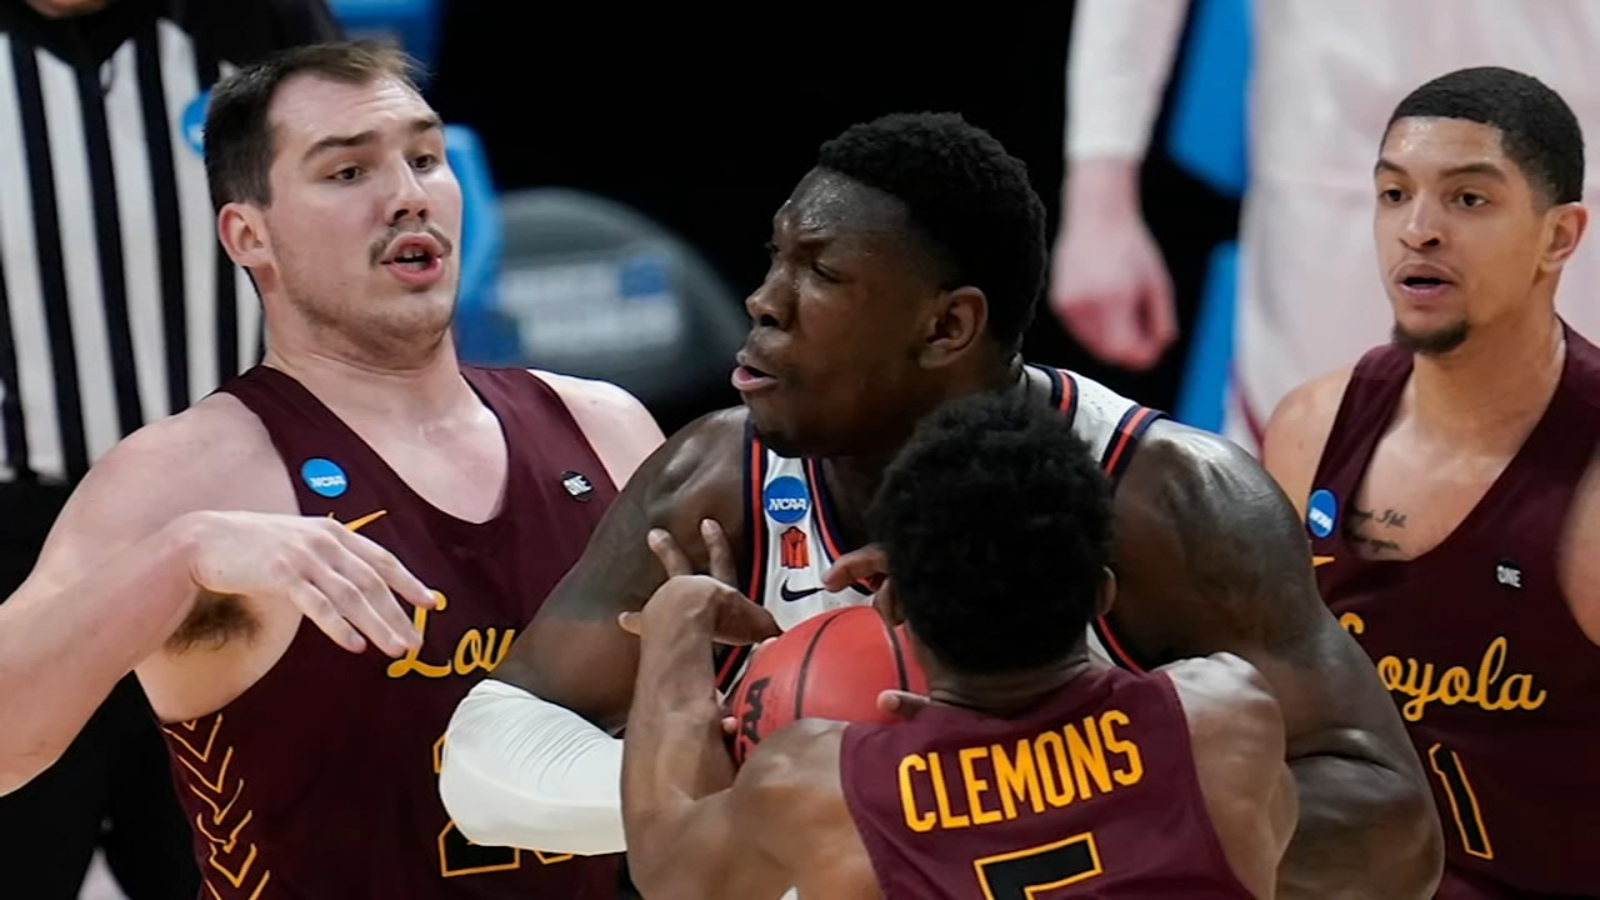 NCAA Tournament: Loyola Ramblers to take on Oregon State in Sweet 16 after upset win over Illinois